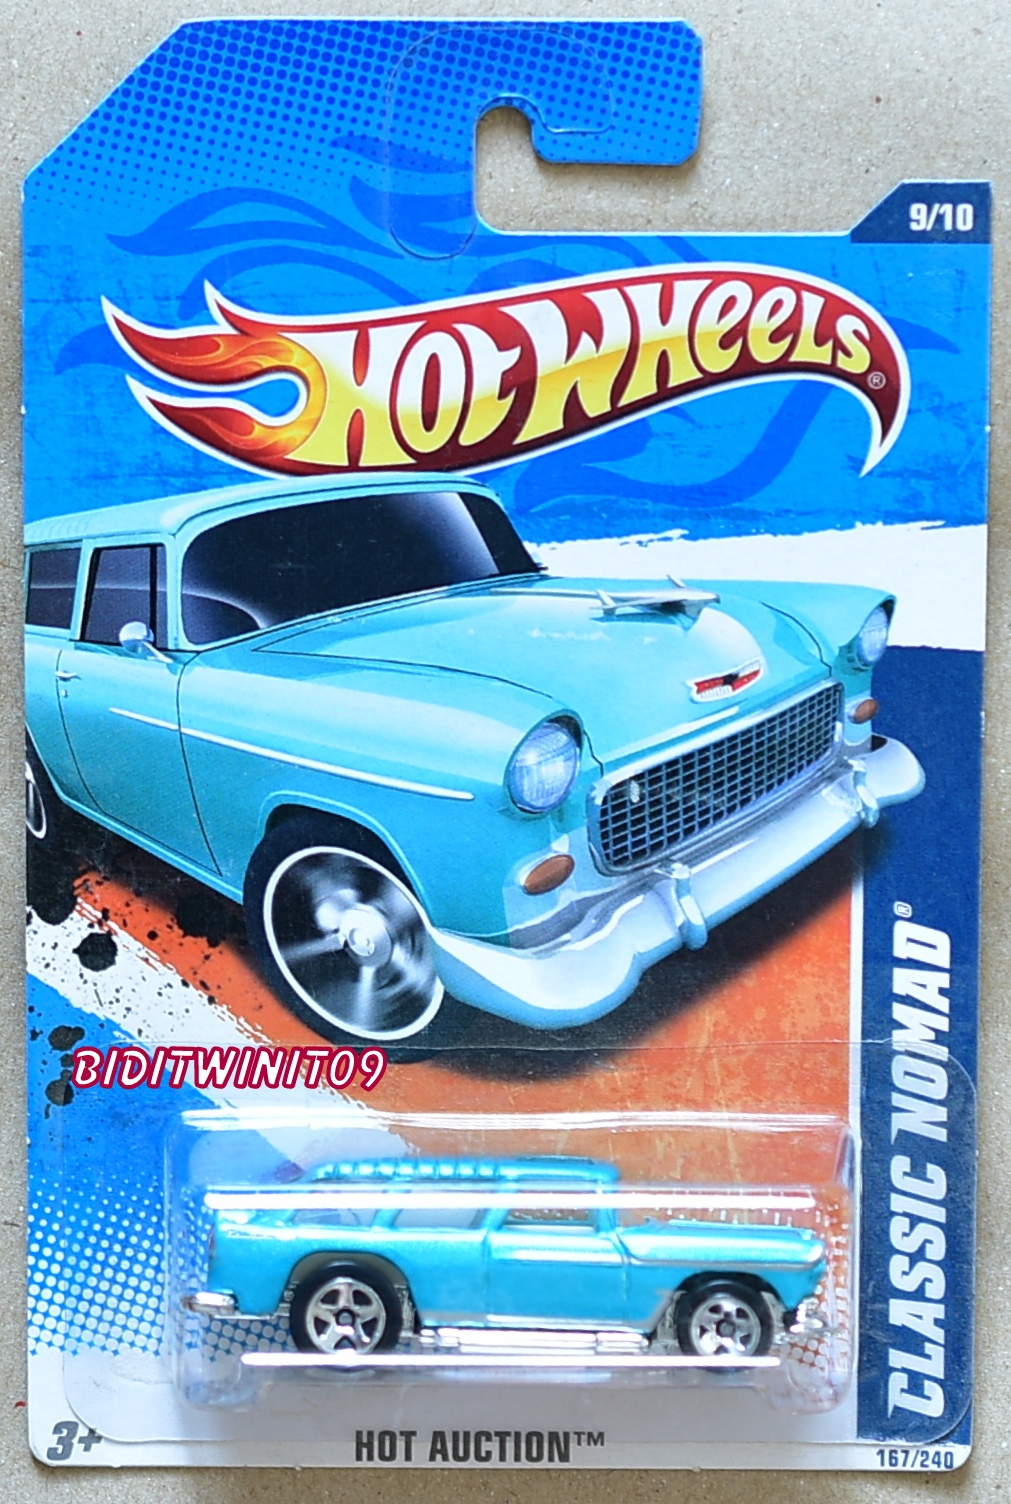 HOT WHEELS 2011 HOT AUCTION CLASSIC NOMAD KMART EXCLUSIVE